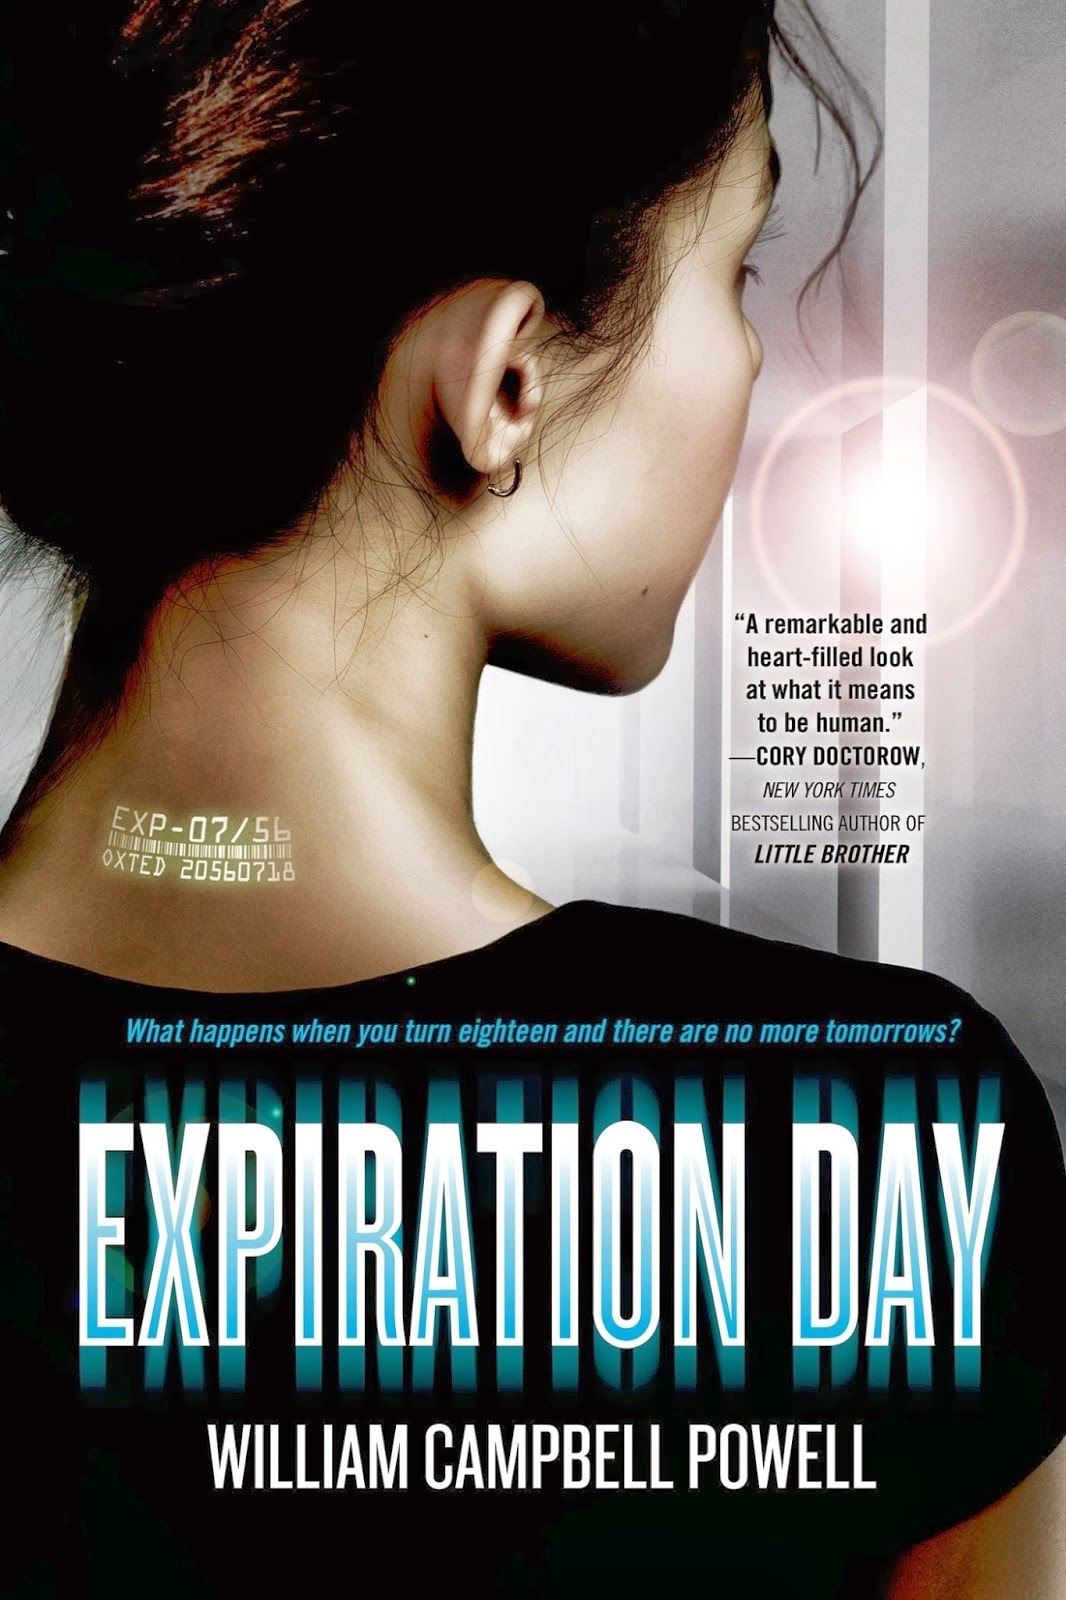 http://us.macmillan.com/expirationday/WilliamCampbellPowell